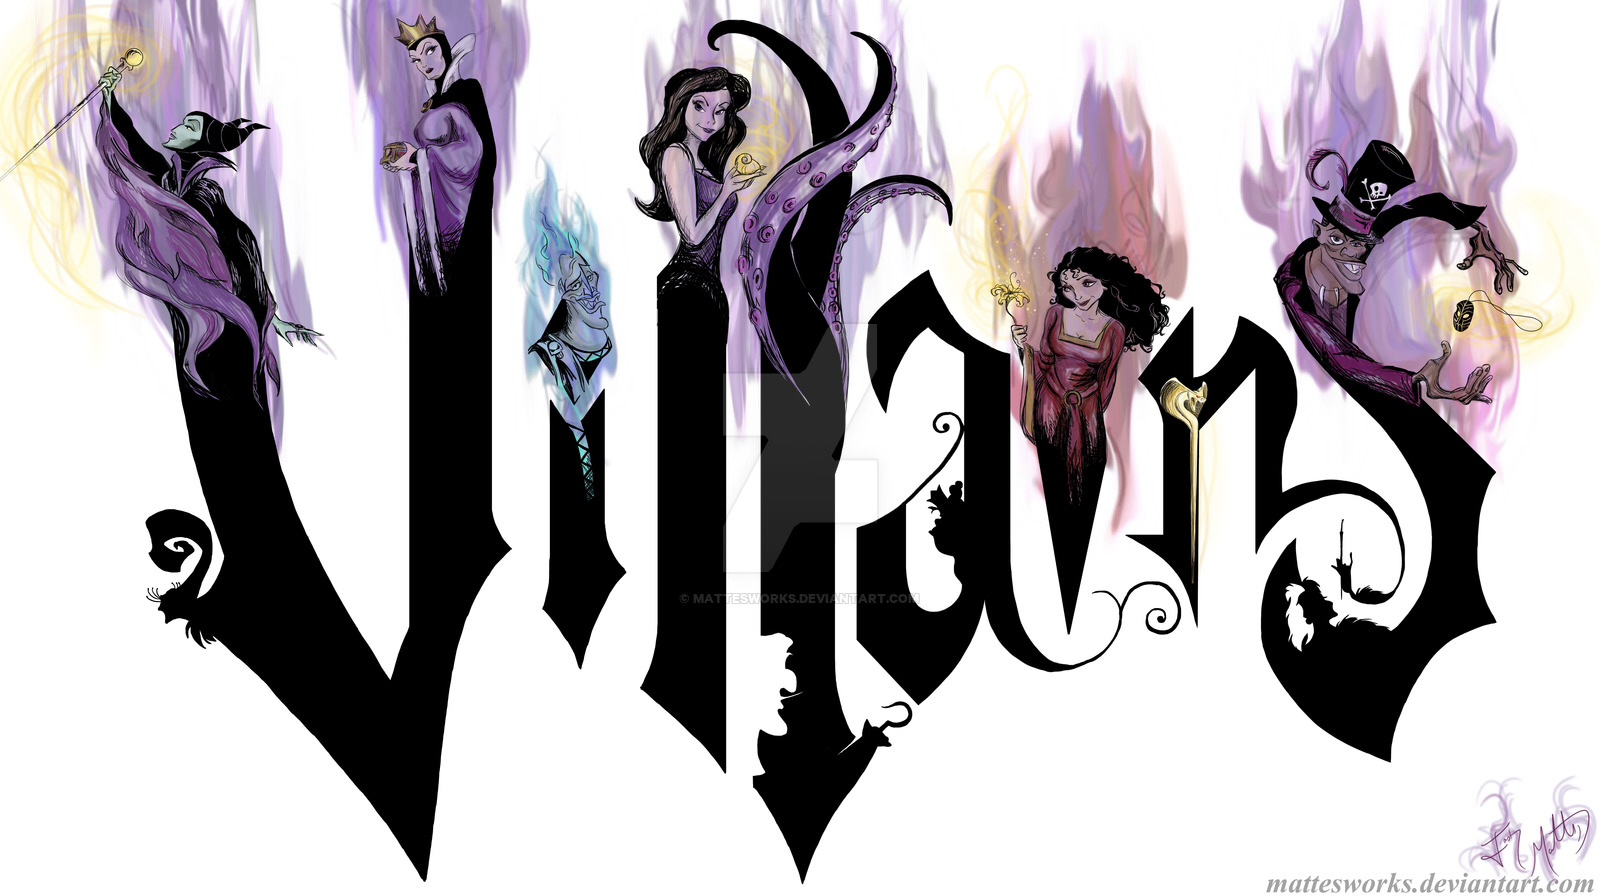 VILLANS are GO with EVILNESS!!